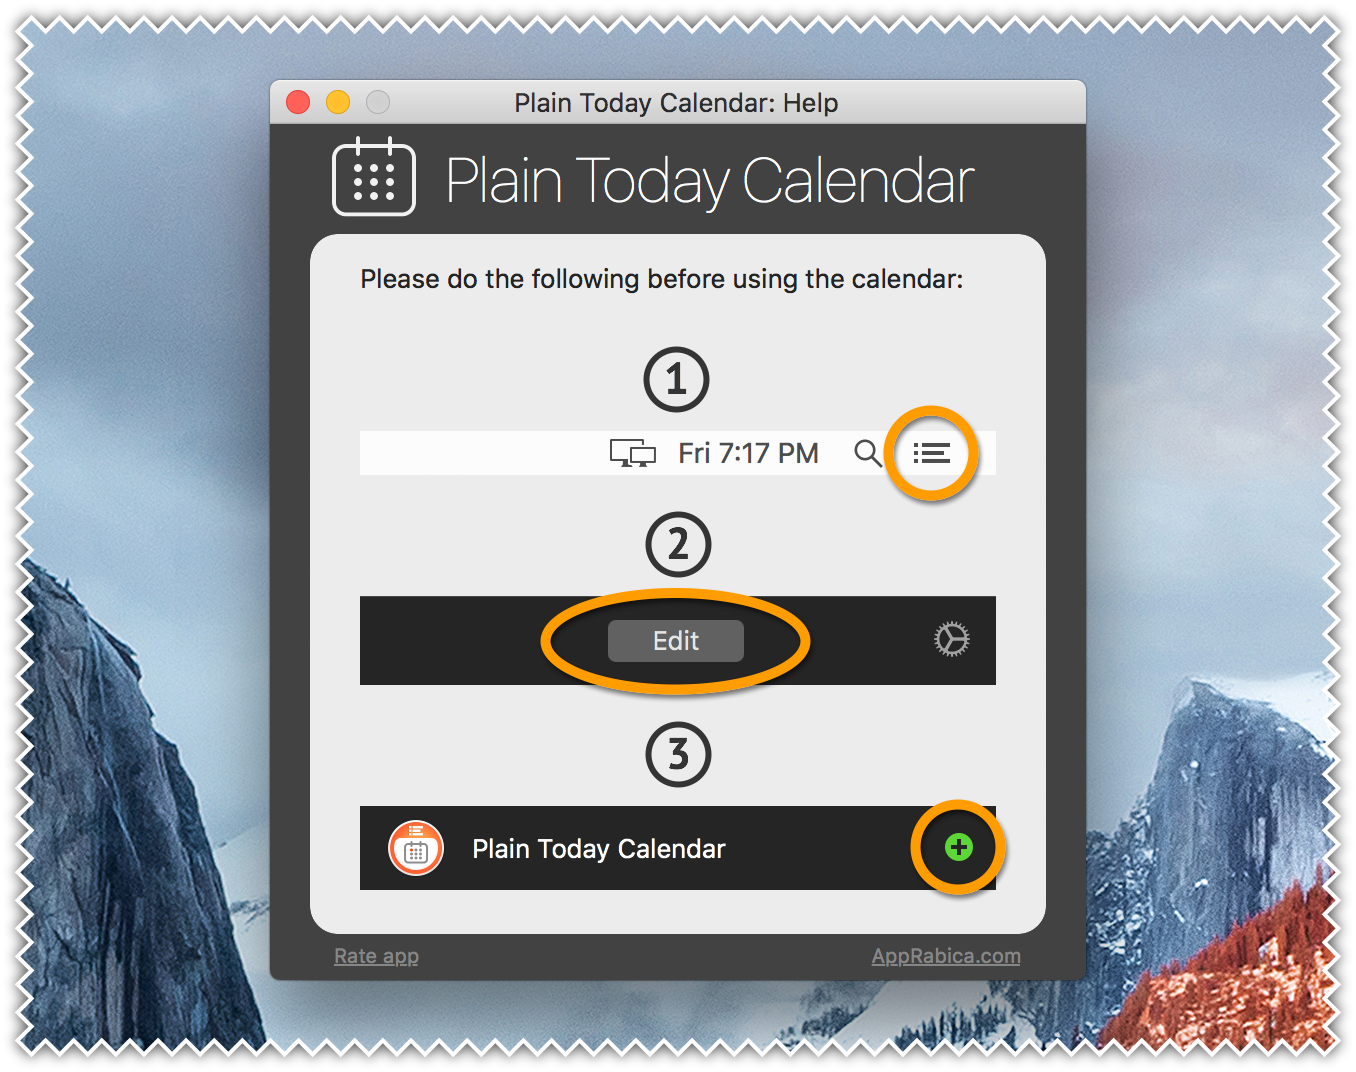 Plain Today Calendar for Mac - Widget Help